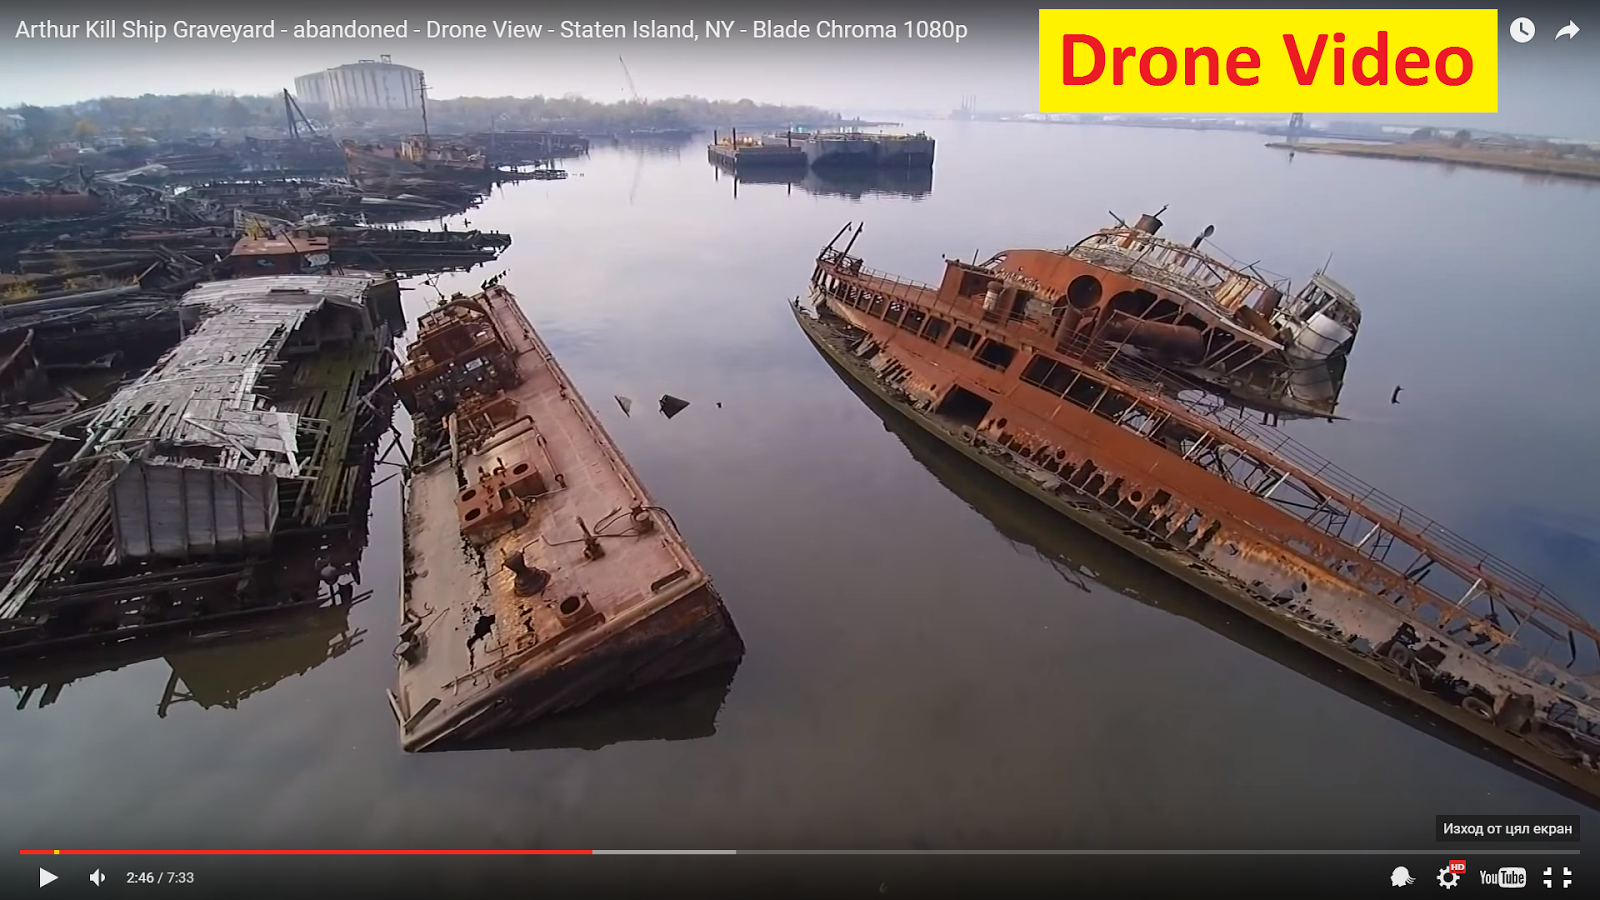 Amazing Drone Video: Once Forgotten Arthur Kill Ship Graveyard